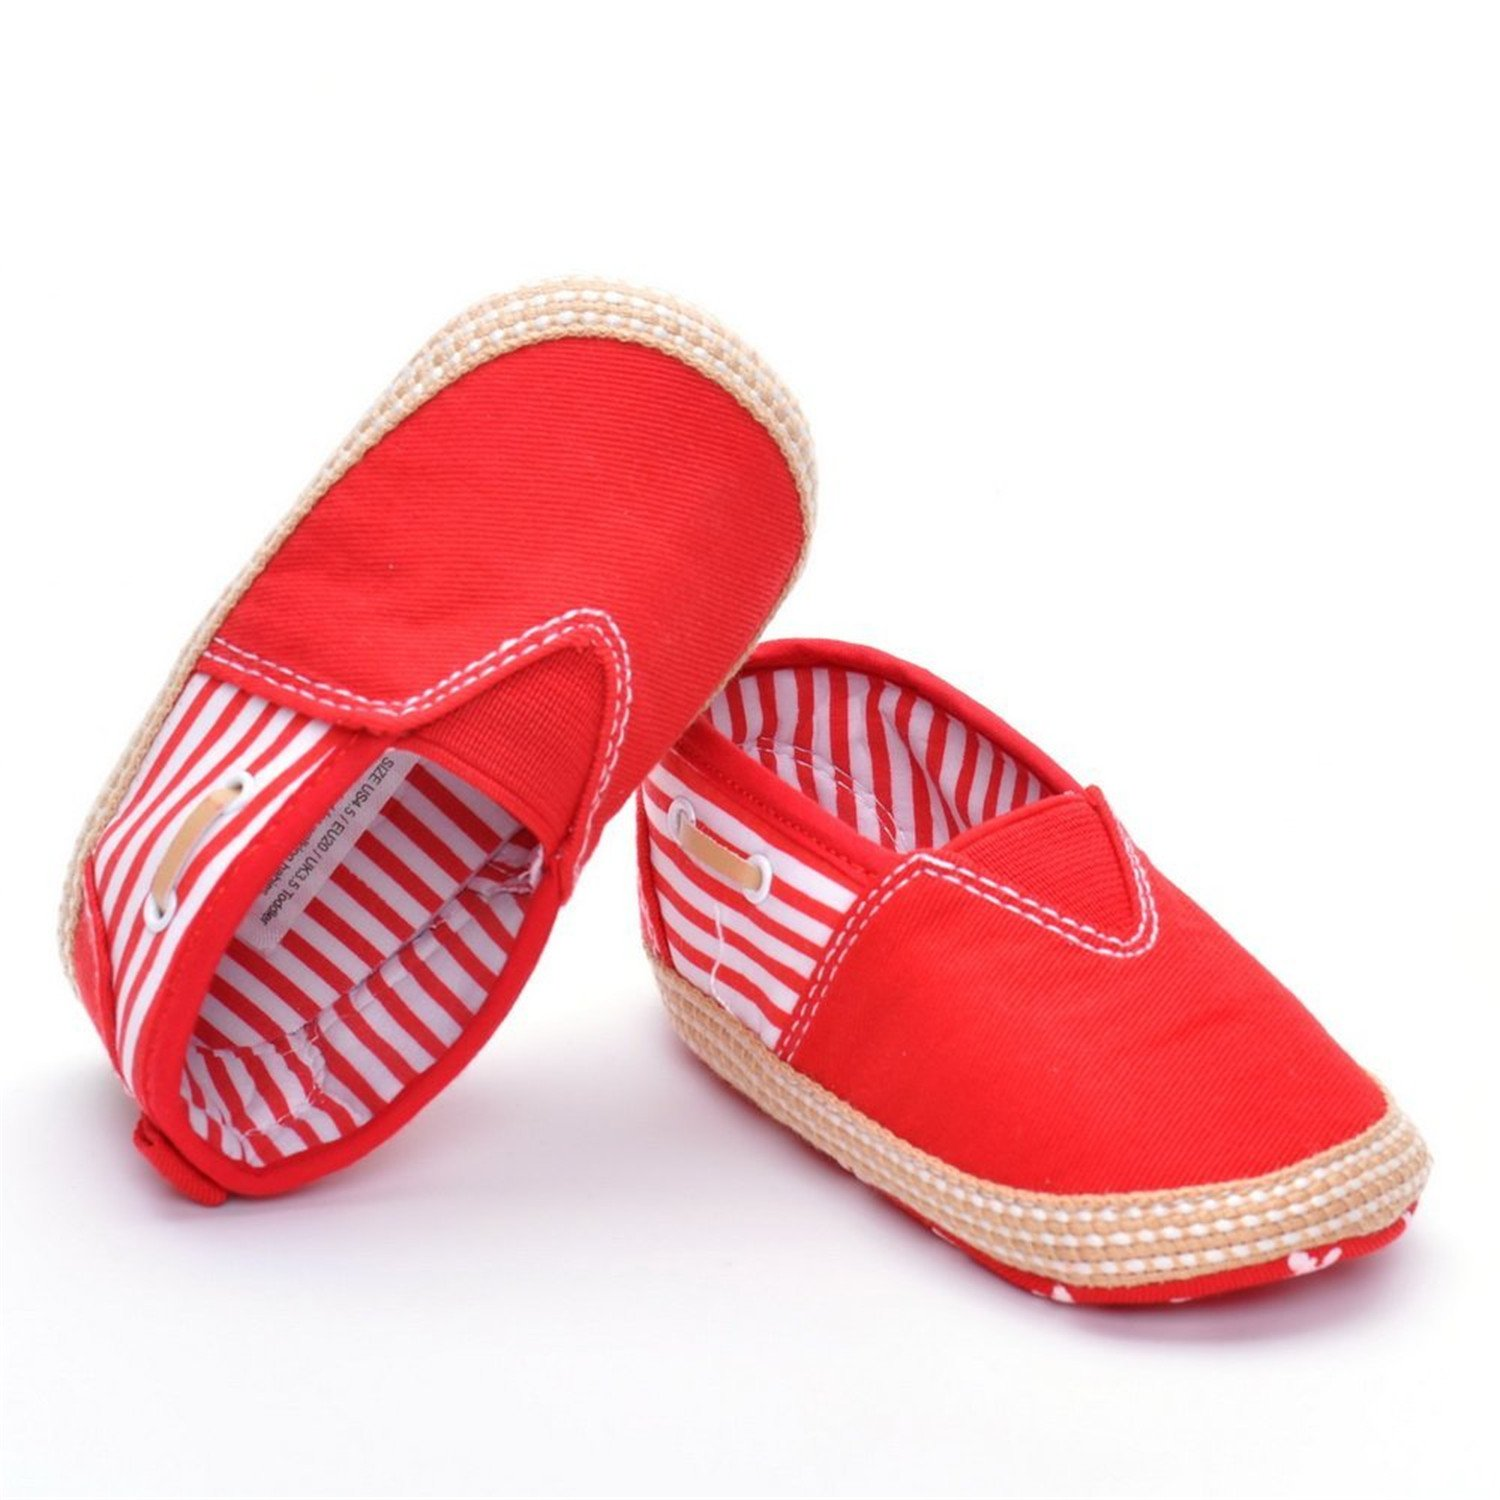 Losver Baby Moccasins Cansvas Sneakers